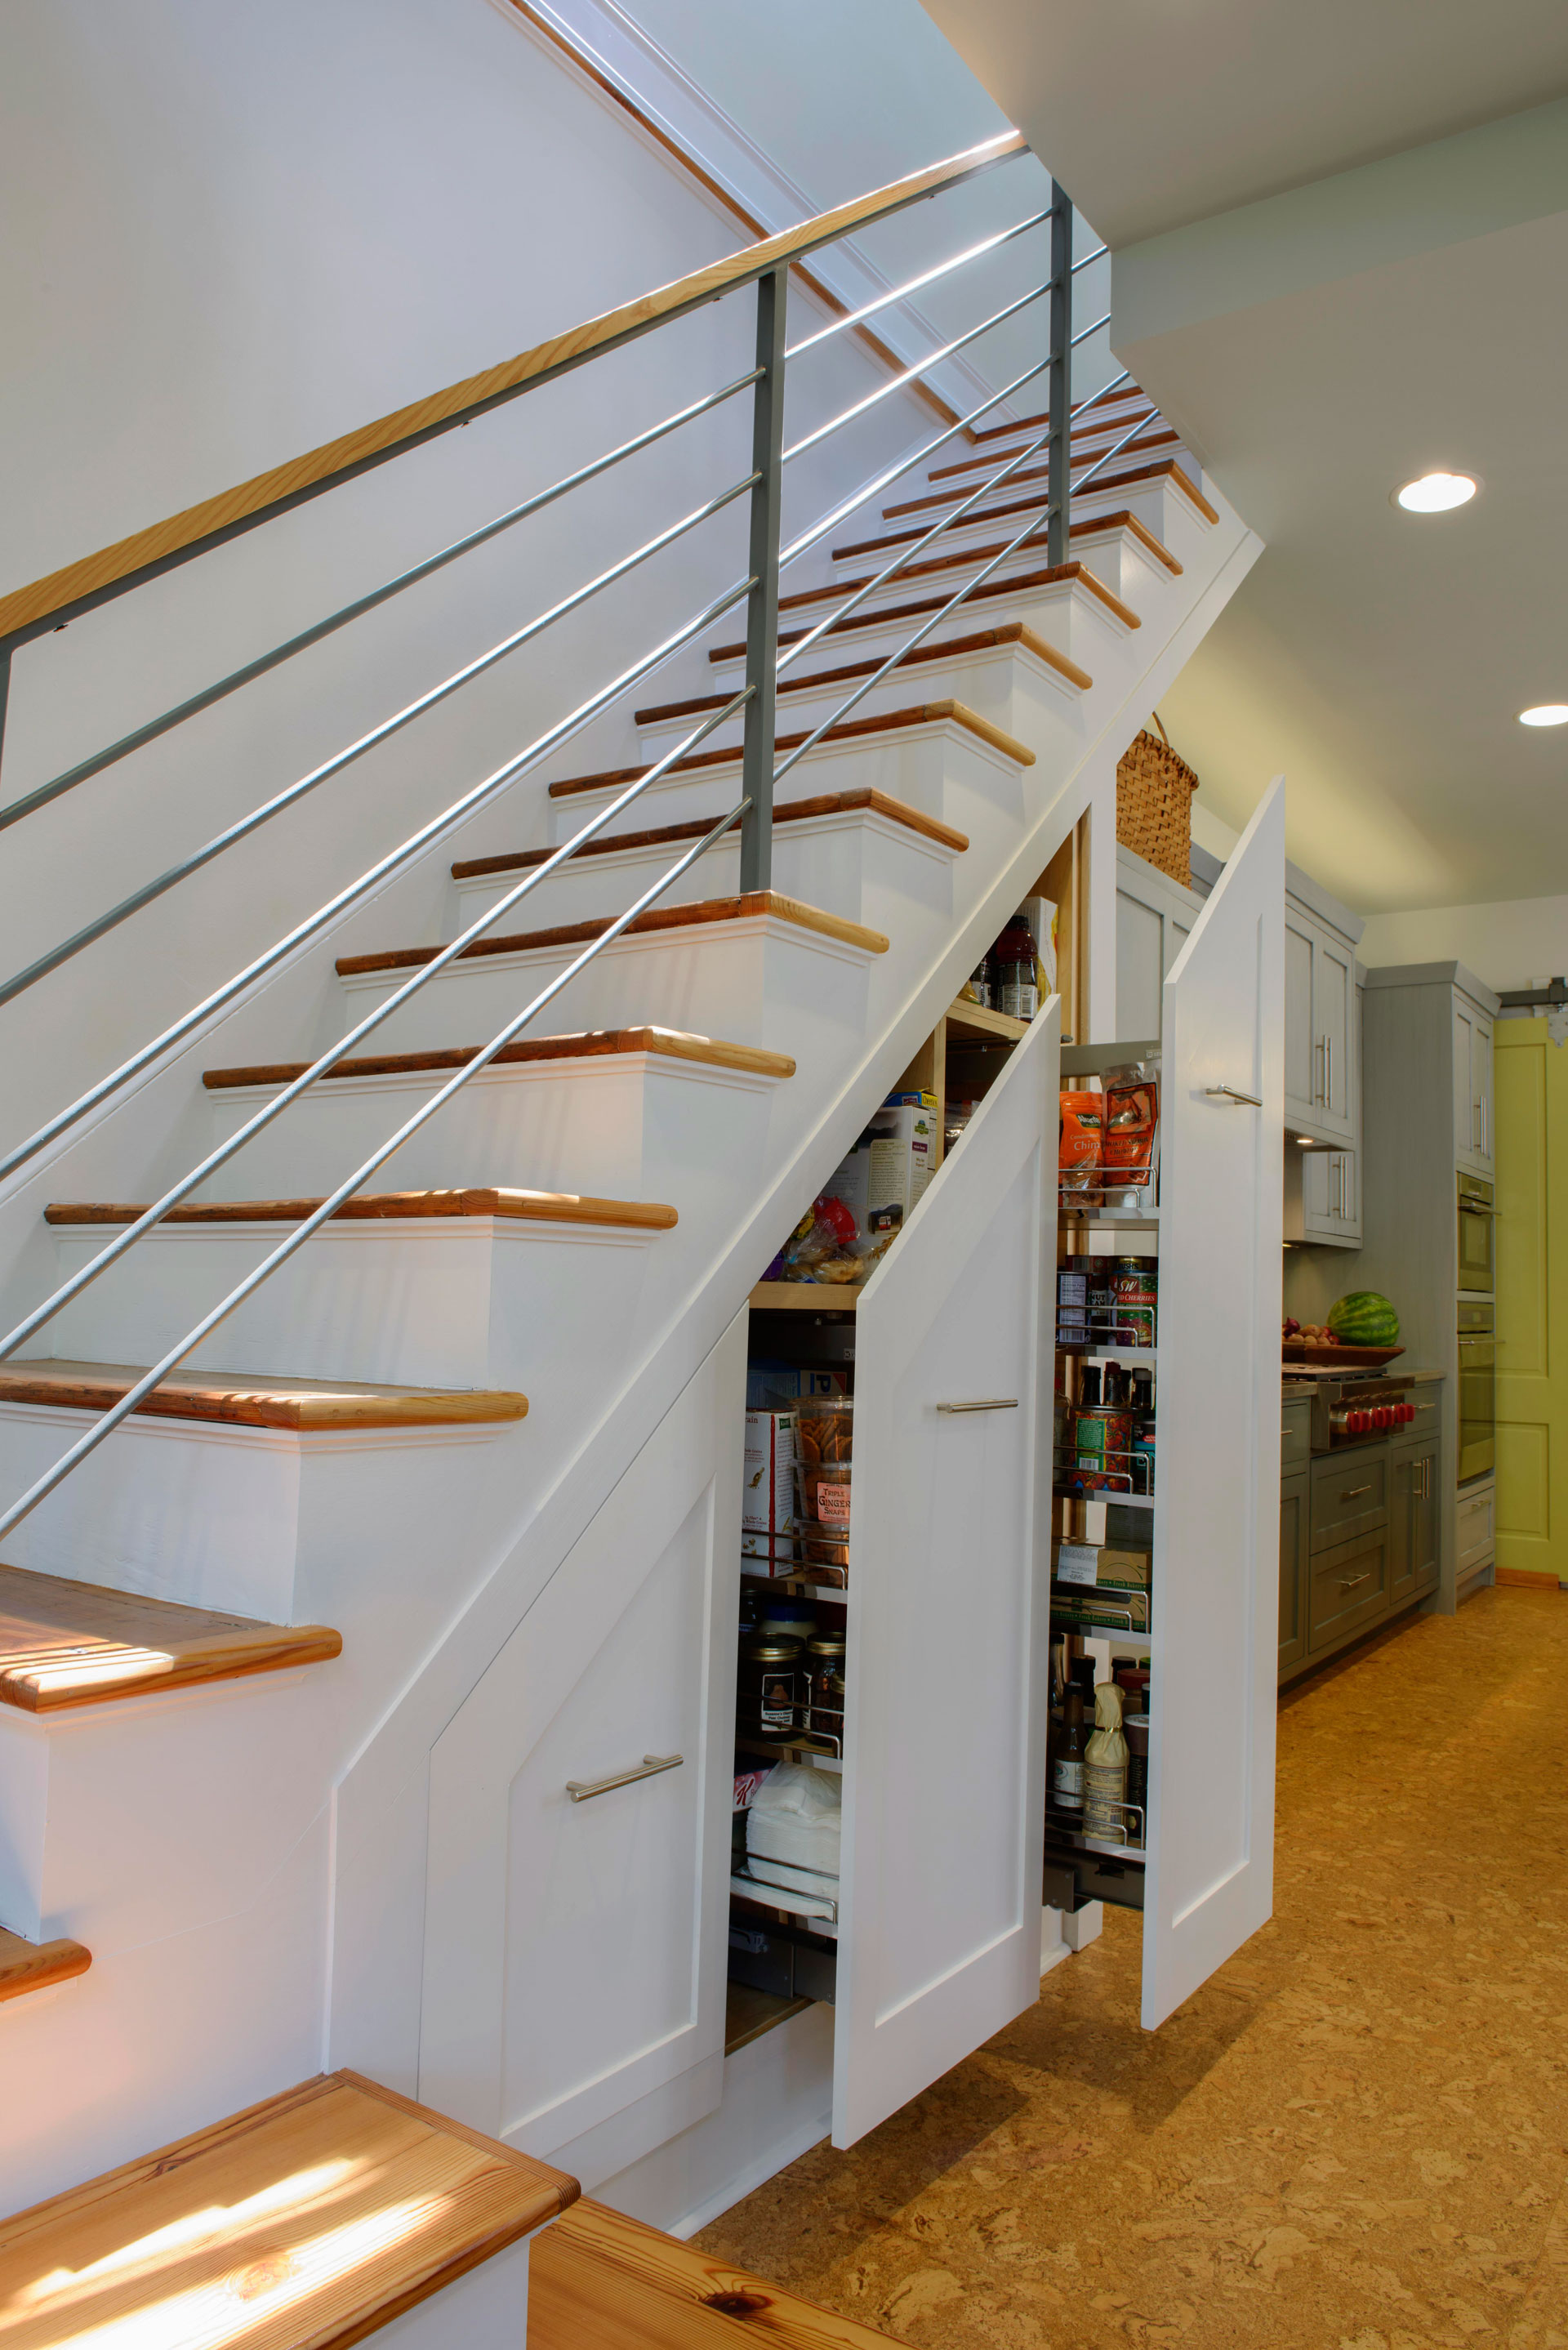 Under the stairs slide-out pantry